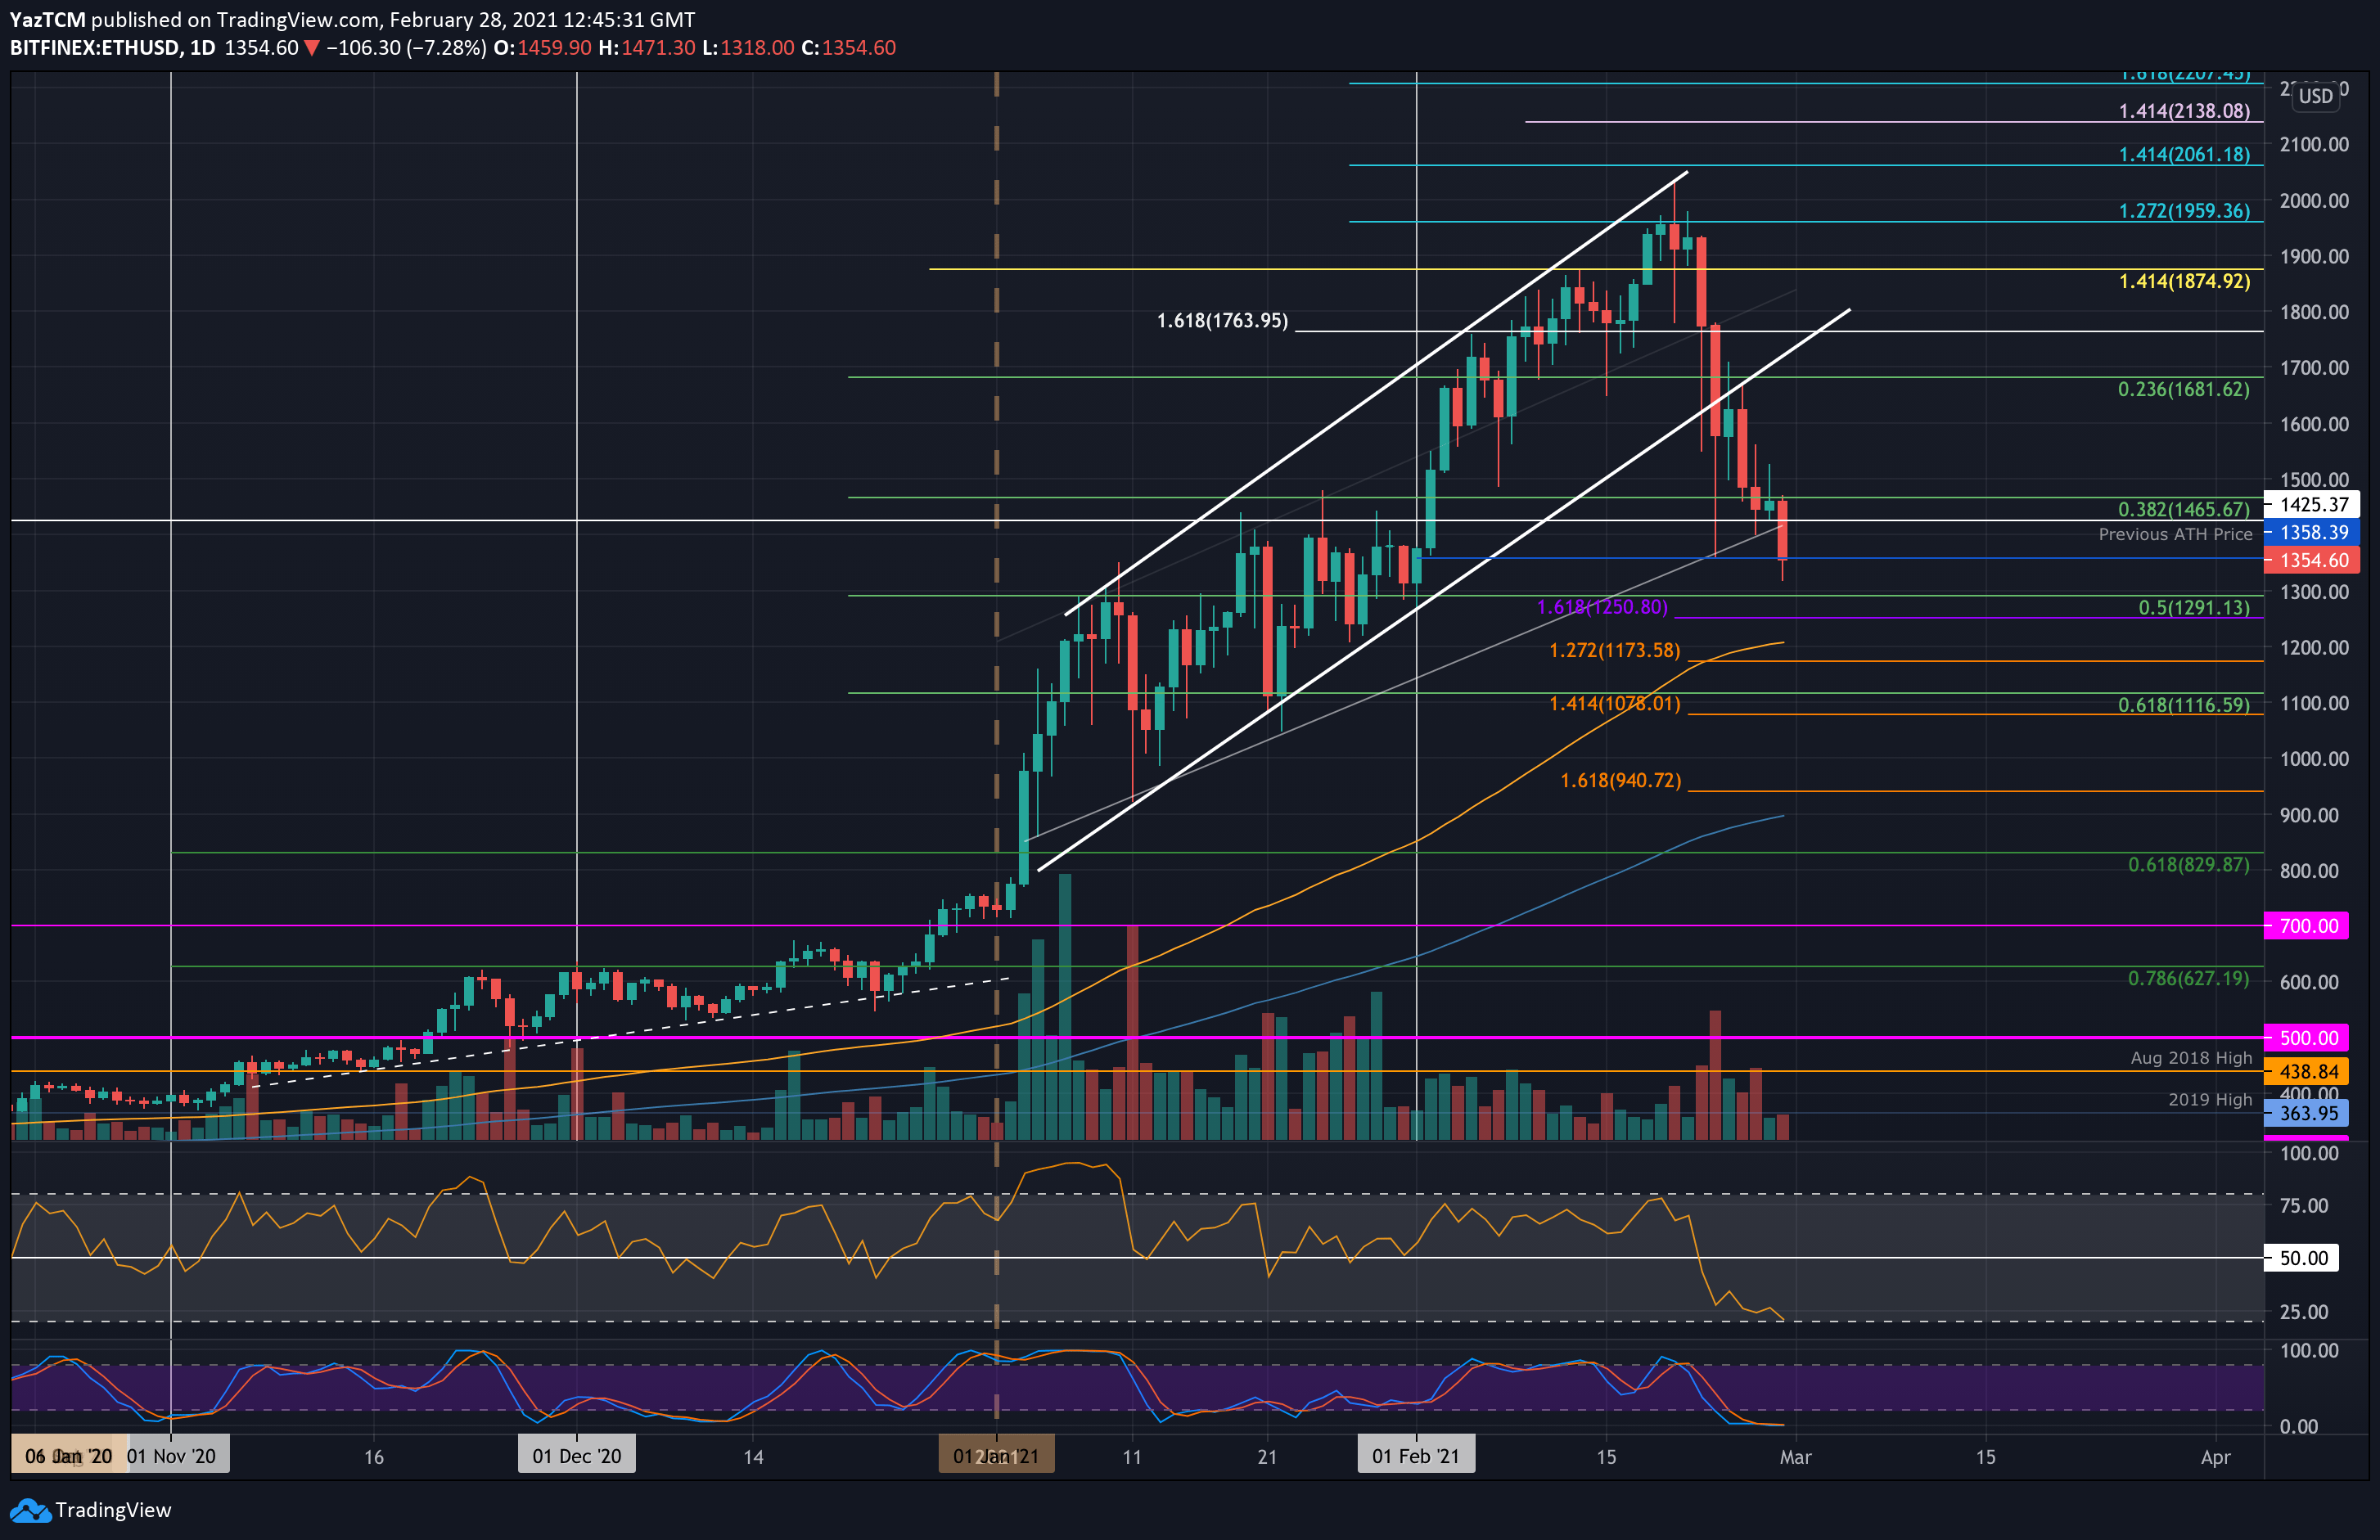 ETH Price Analysis: After Losing 30% This Week, Ethereum Facing Crucial Support At Previous ATH